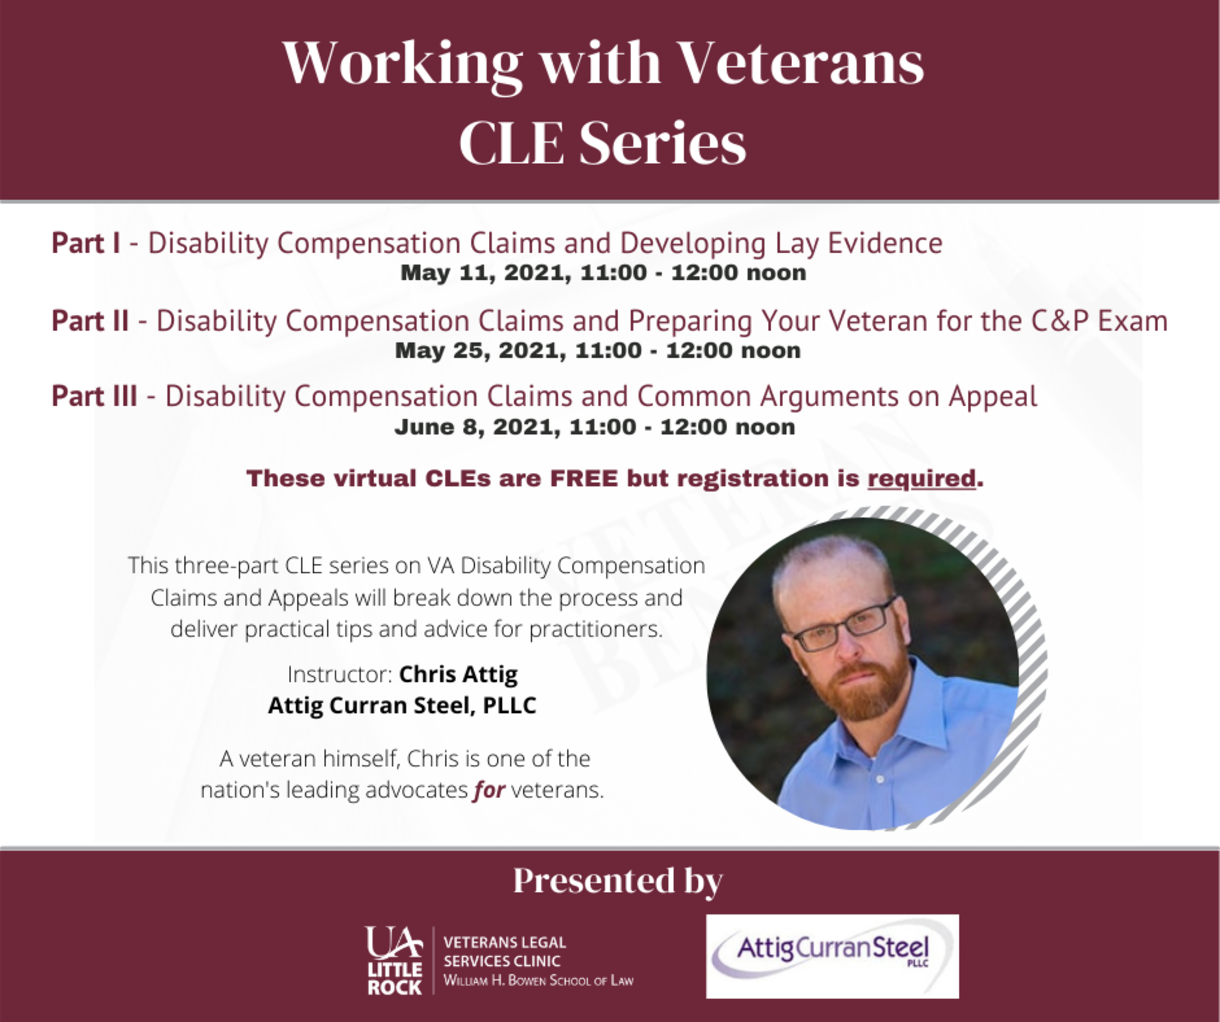 Working with Veterans CLE series